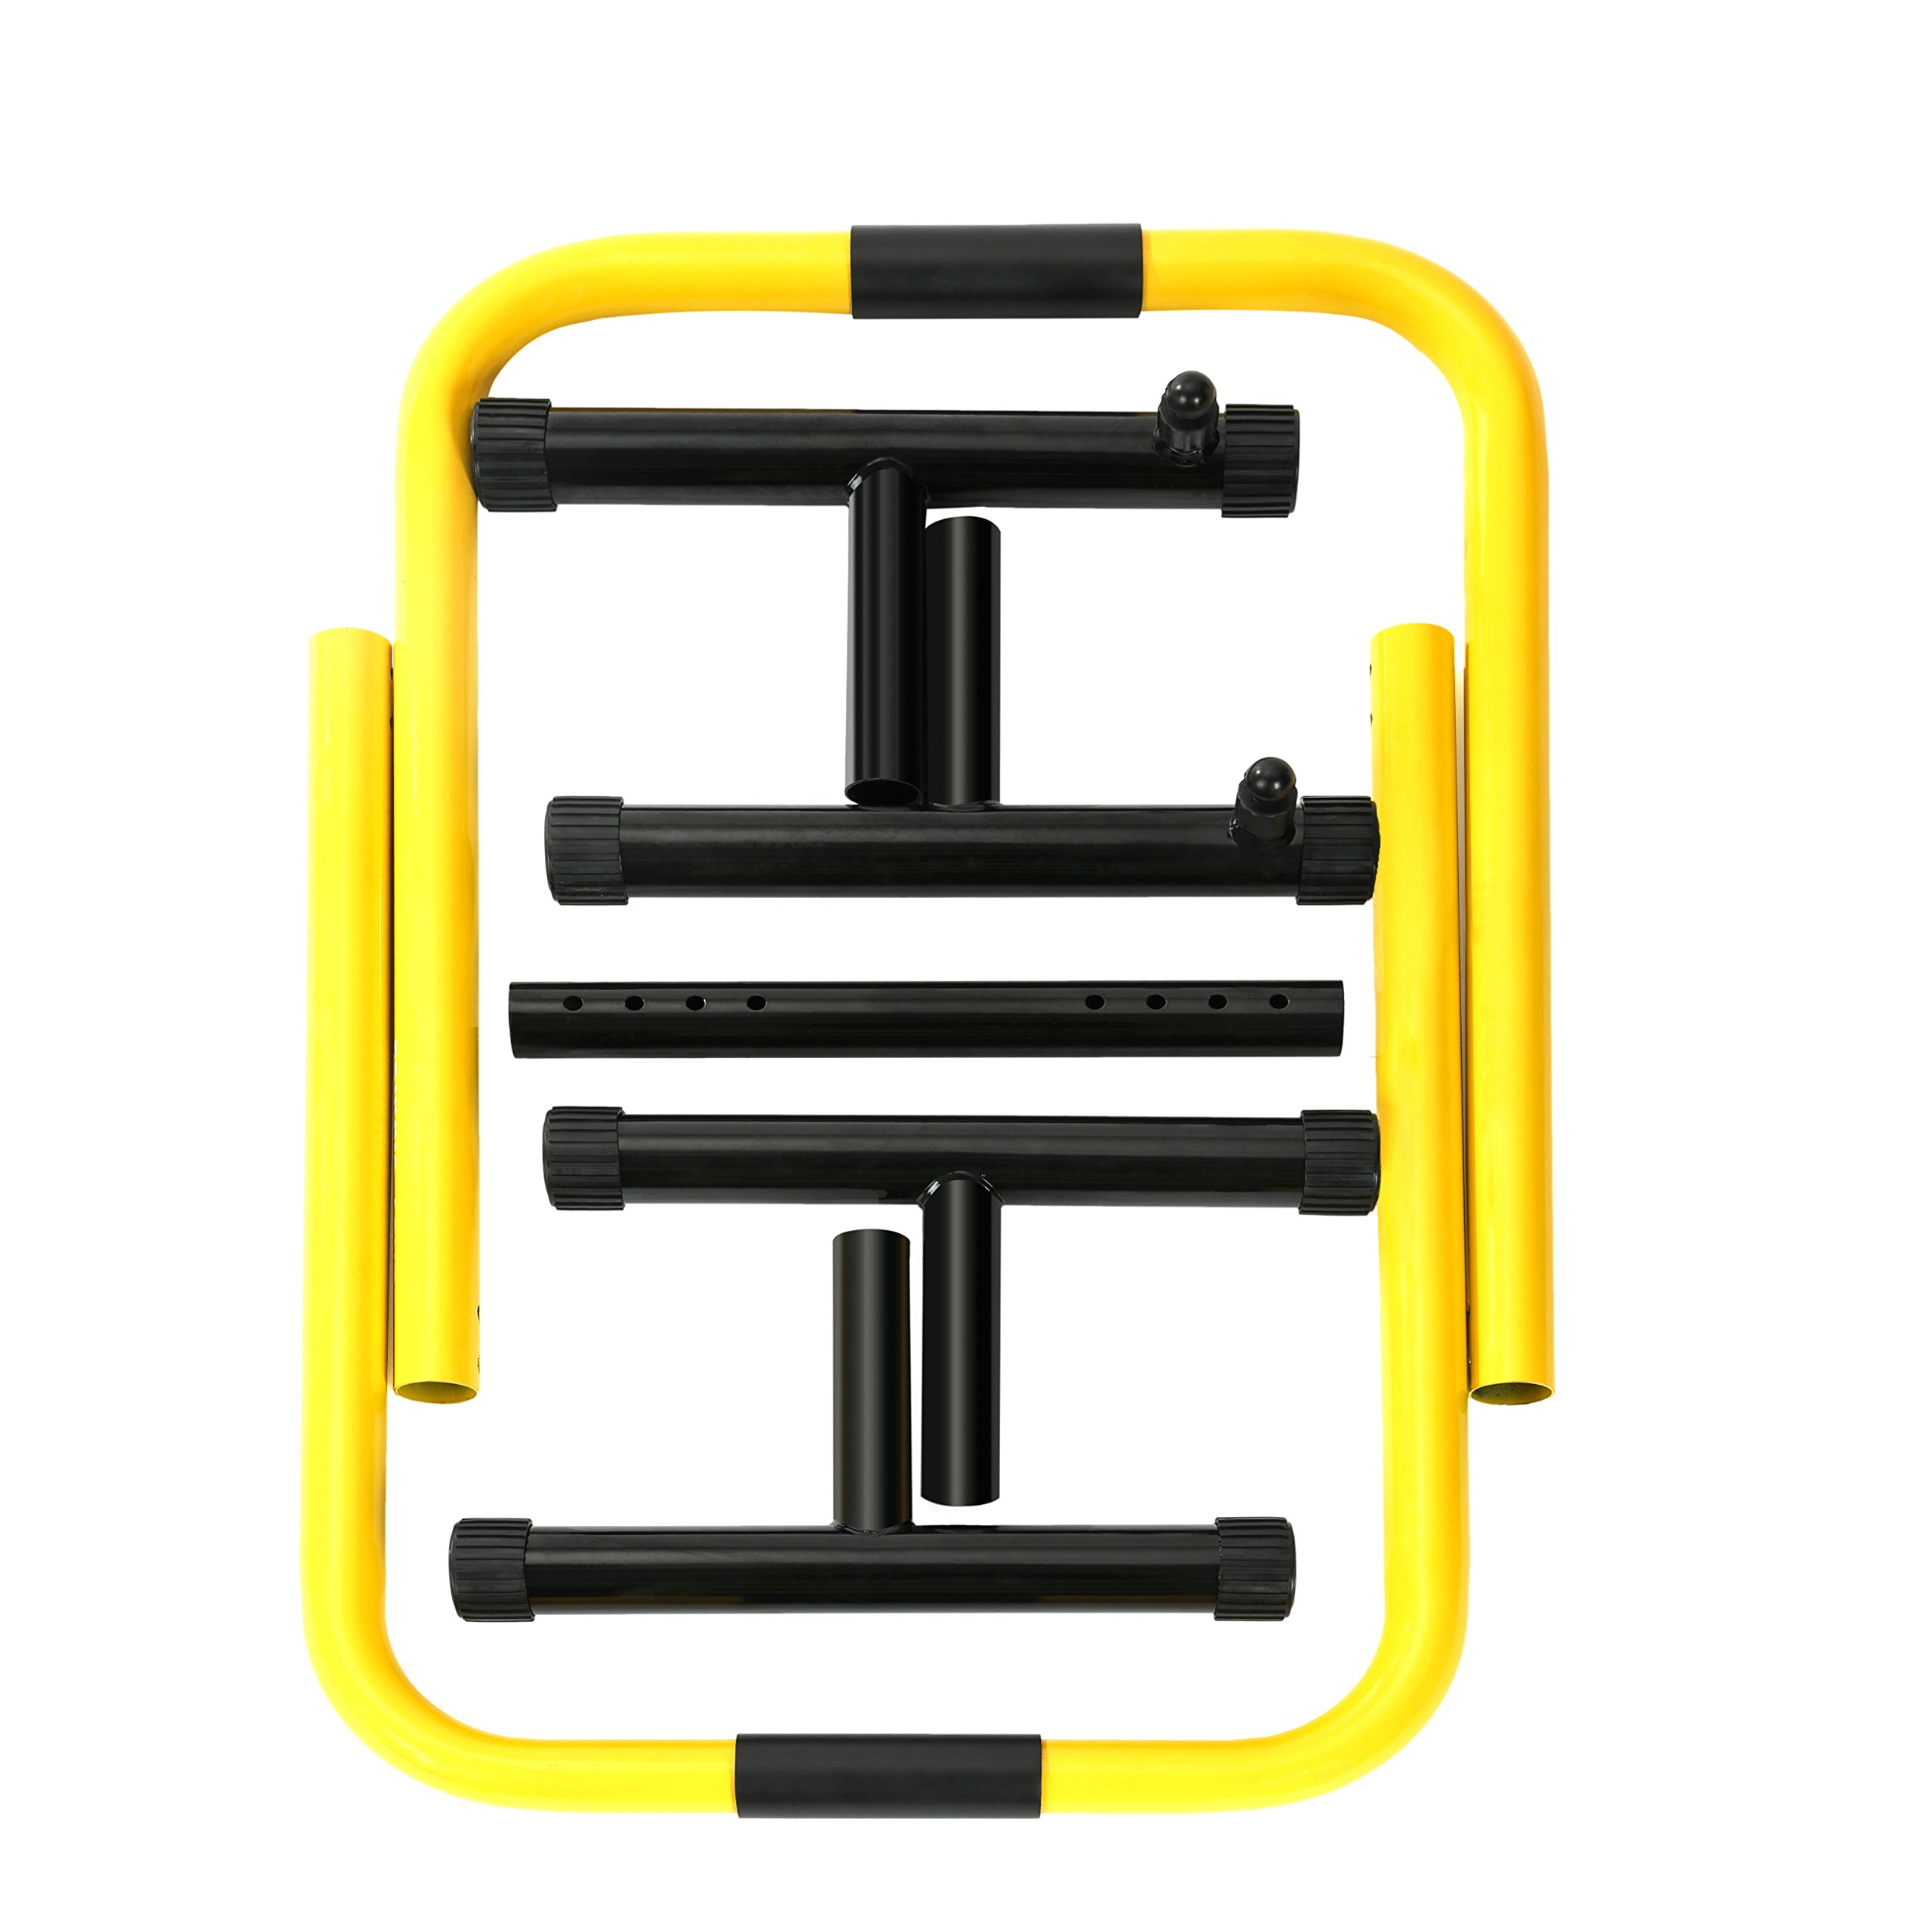 RELIFE REBUILD YOUR LIFE Dip Station Functional Heavy Duty Dip Stands Fitness Workout Dip bar Station Stabilizer Parallette Push Up Stand by RELIFE REBUILD YOUR LIFE (Image #8)